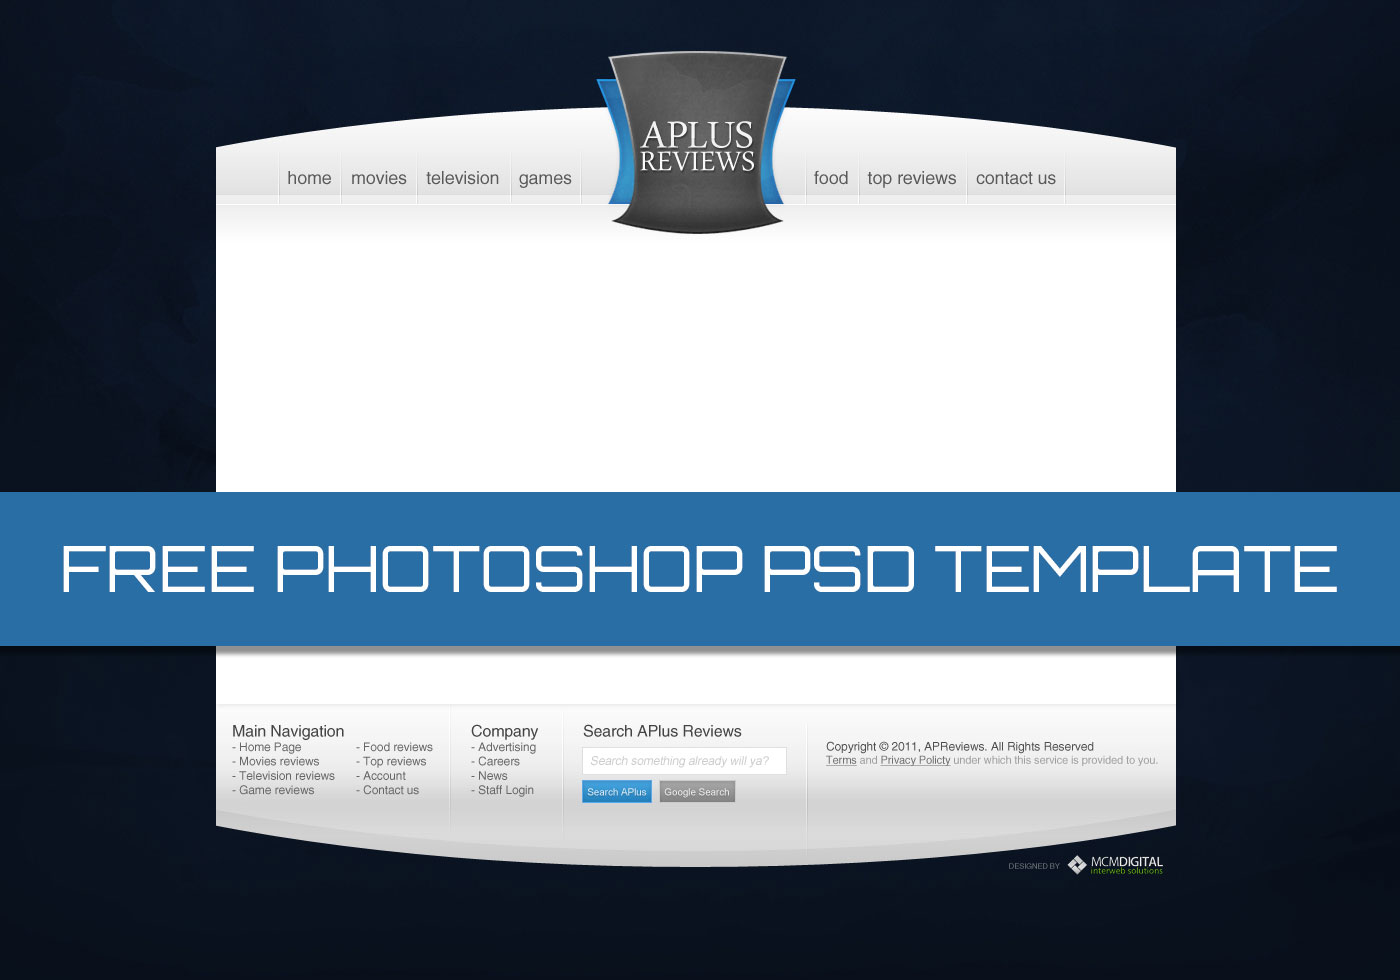 high quality review site template free photoshop brushes. Black Bedroom Furniture Sets. Home Design Ideas